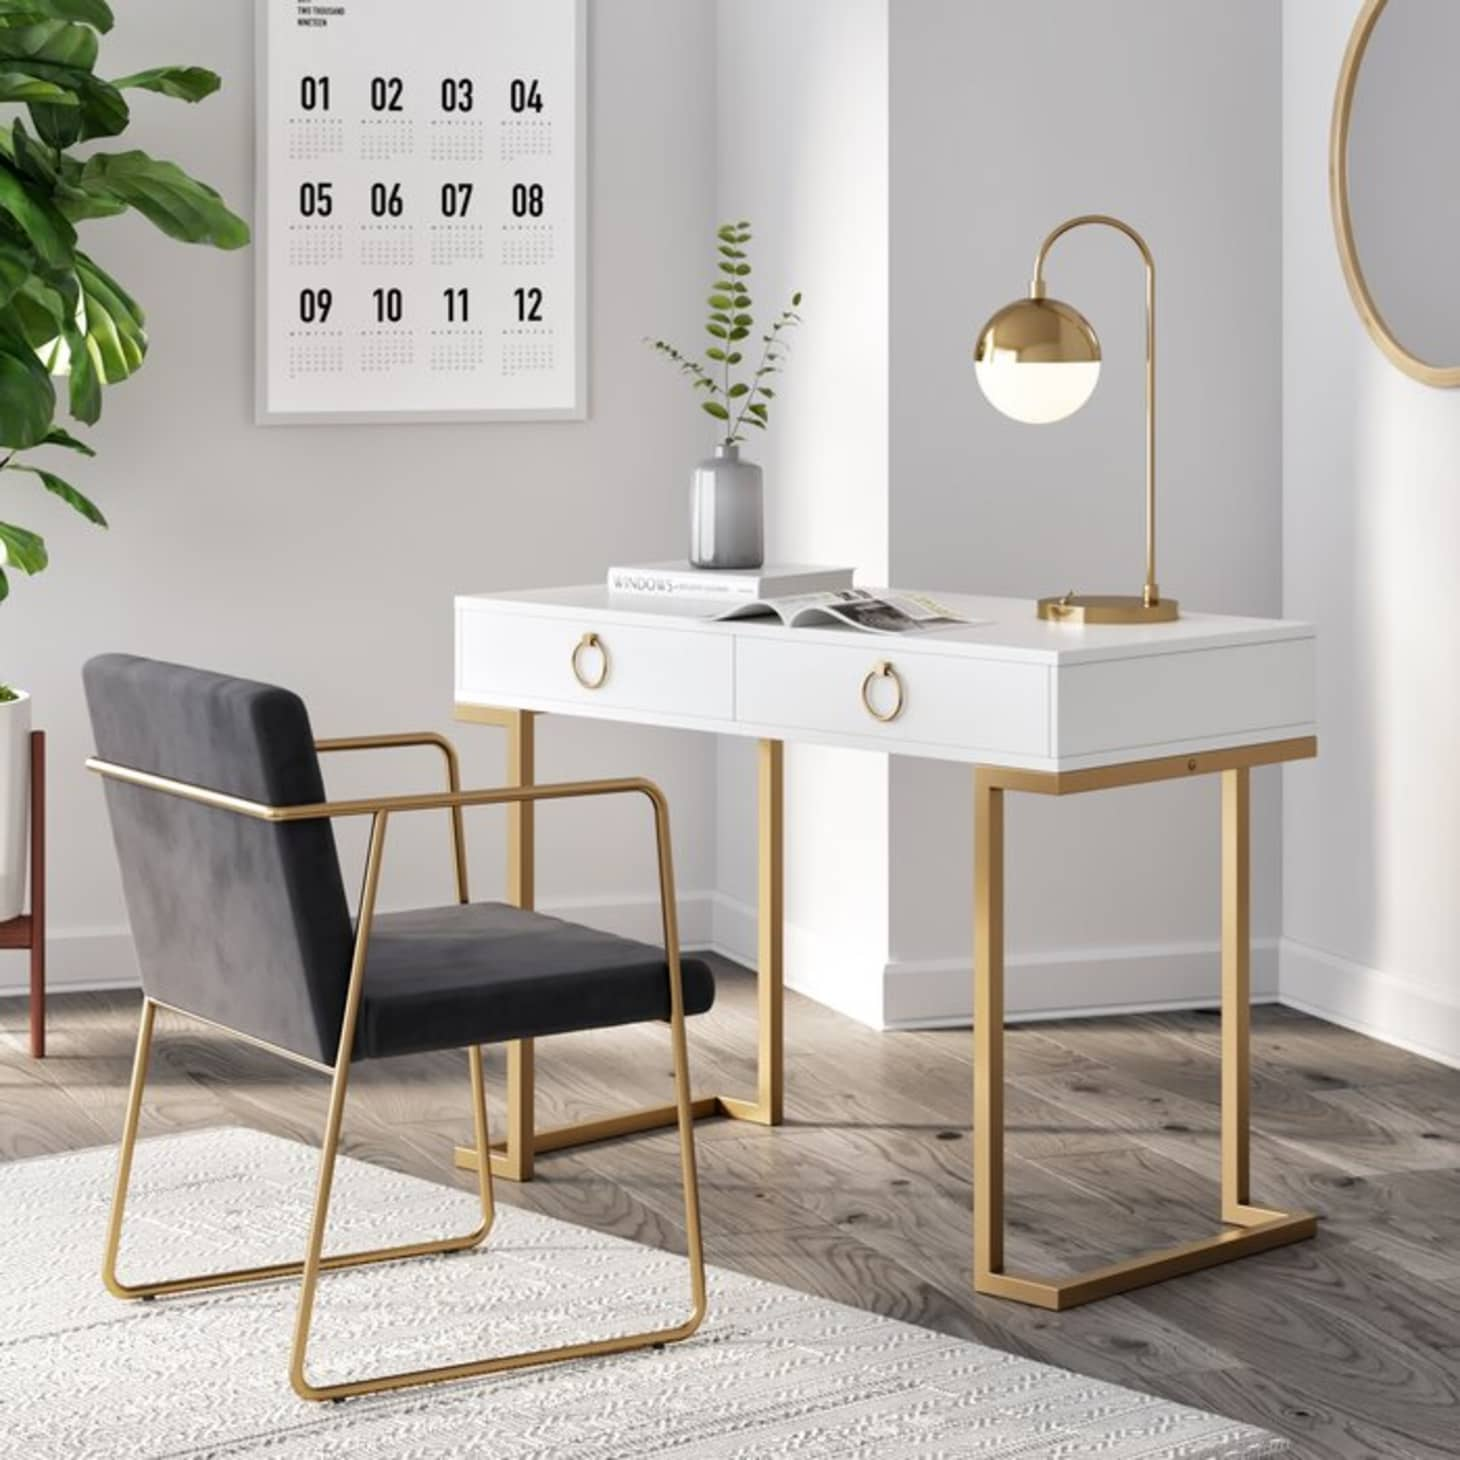 Image of: 30 Trendy Desks For Small Spaces In 2020 That You Ll Love